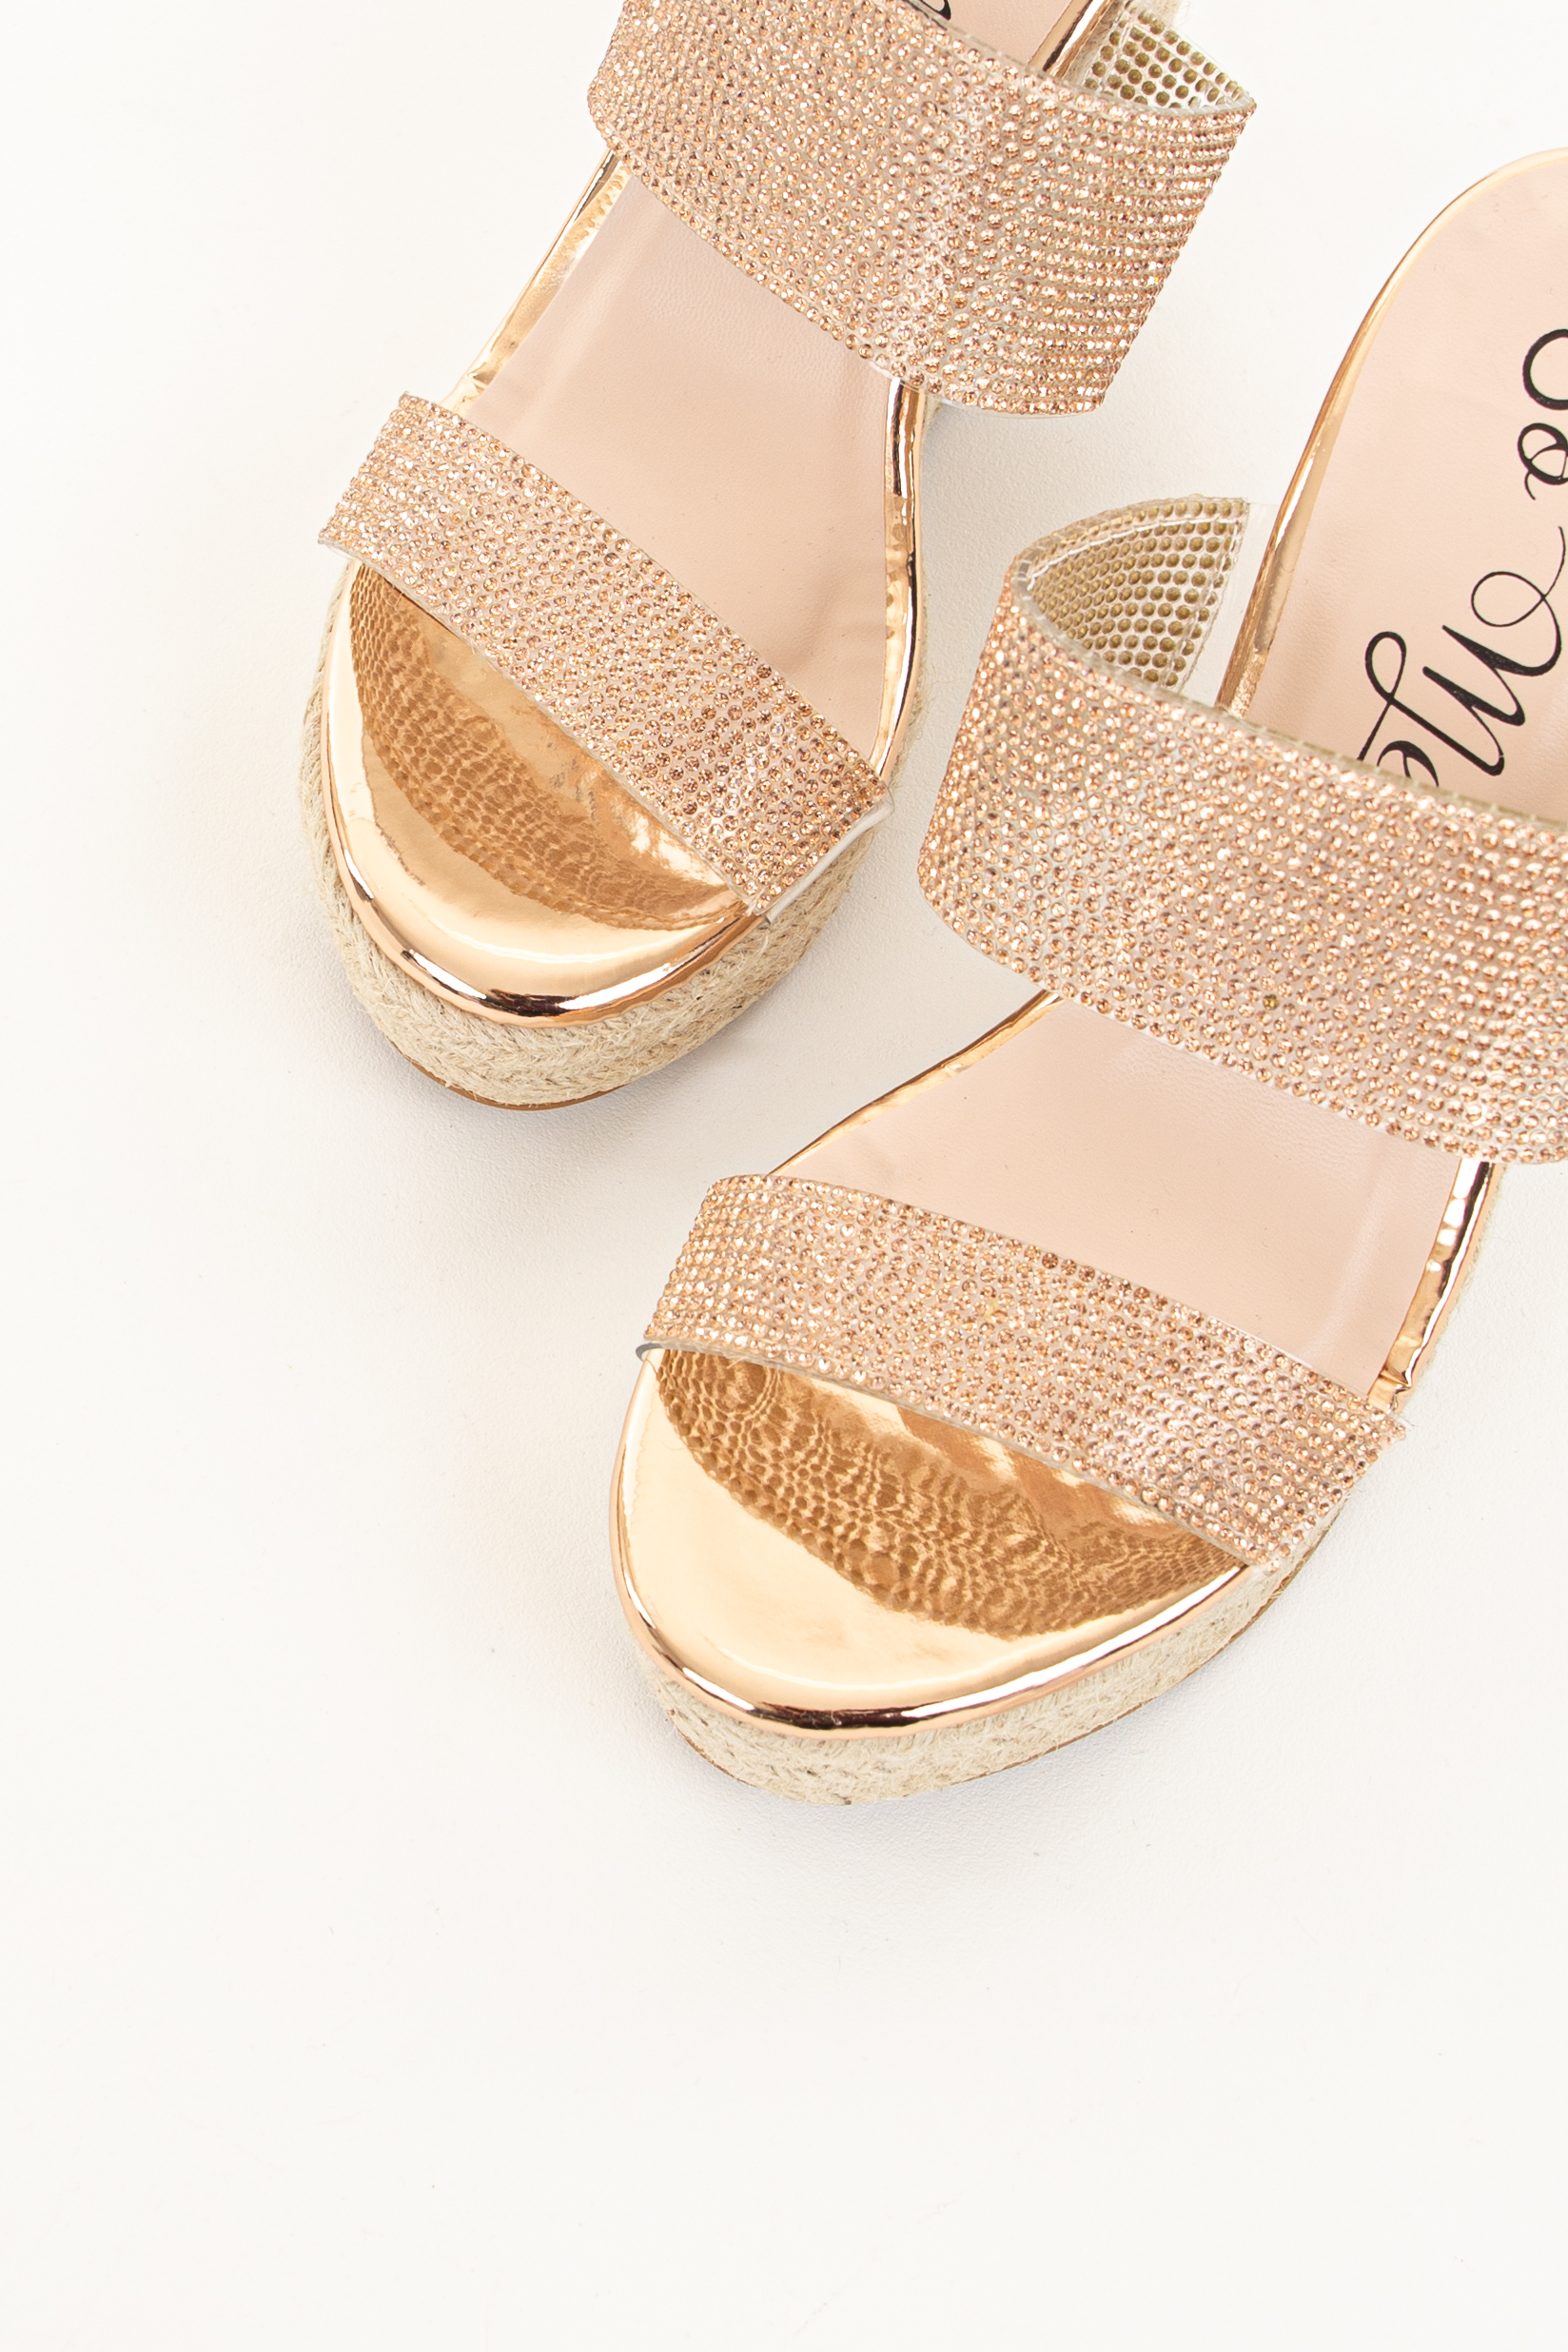 Rose Gold Espadrille Wedge Sandals with Rhinestone Details